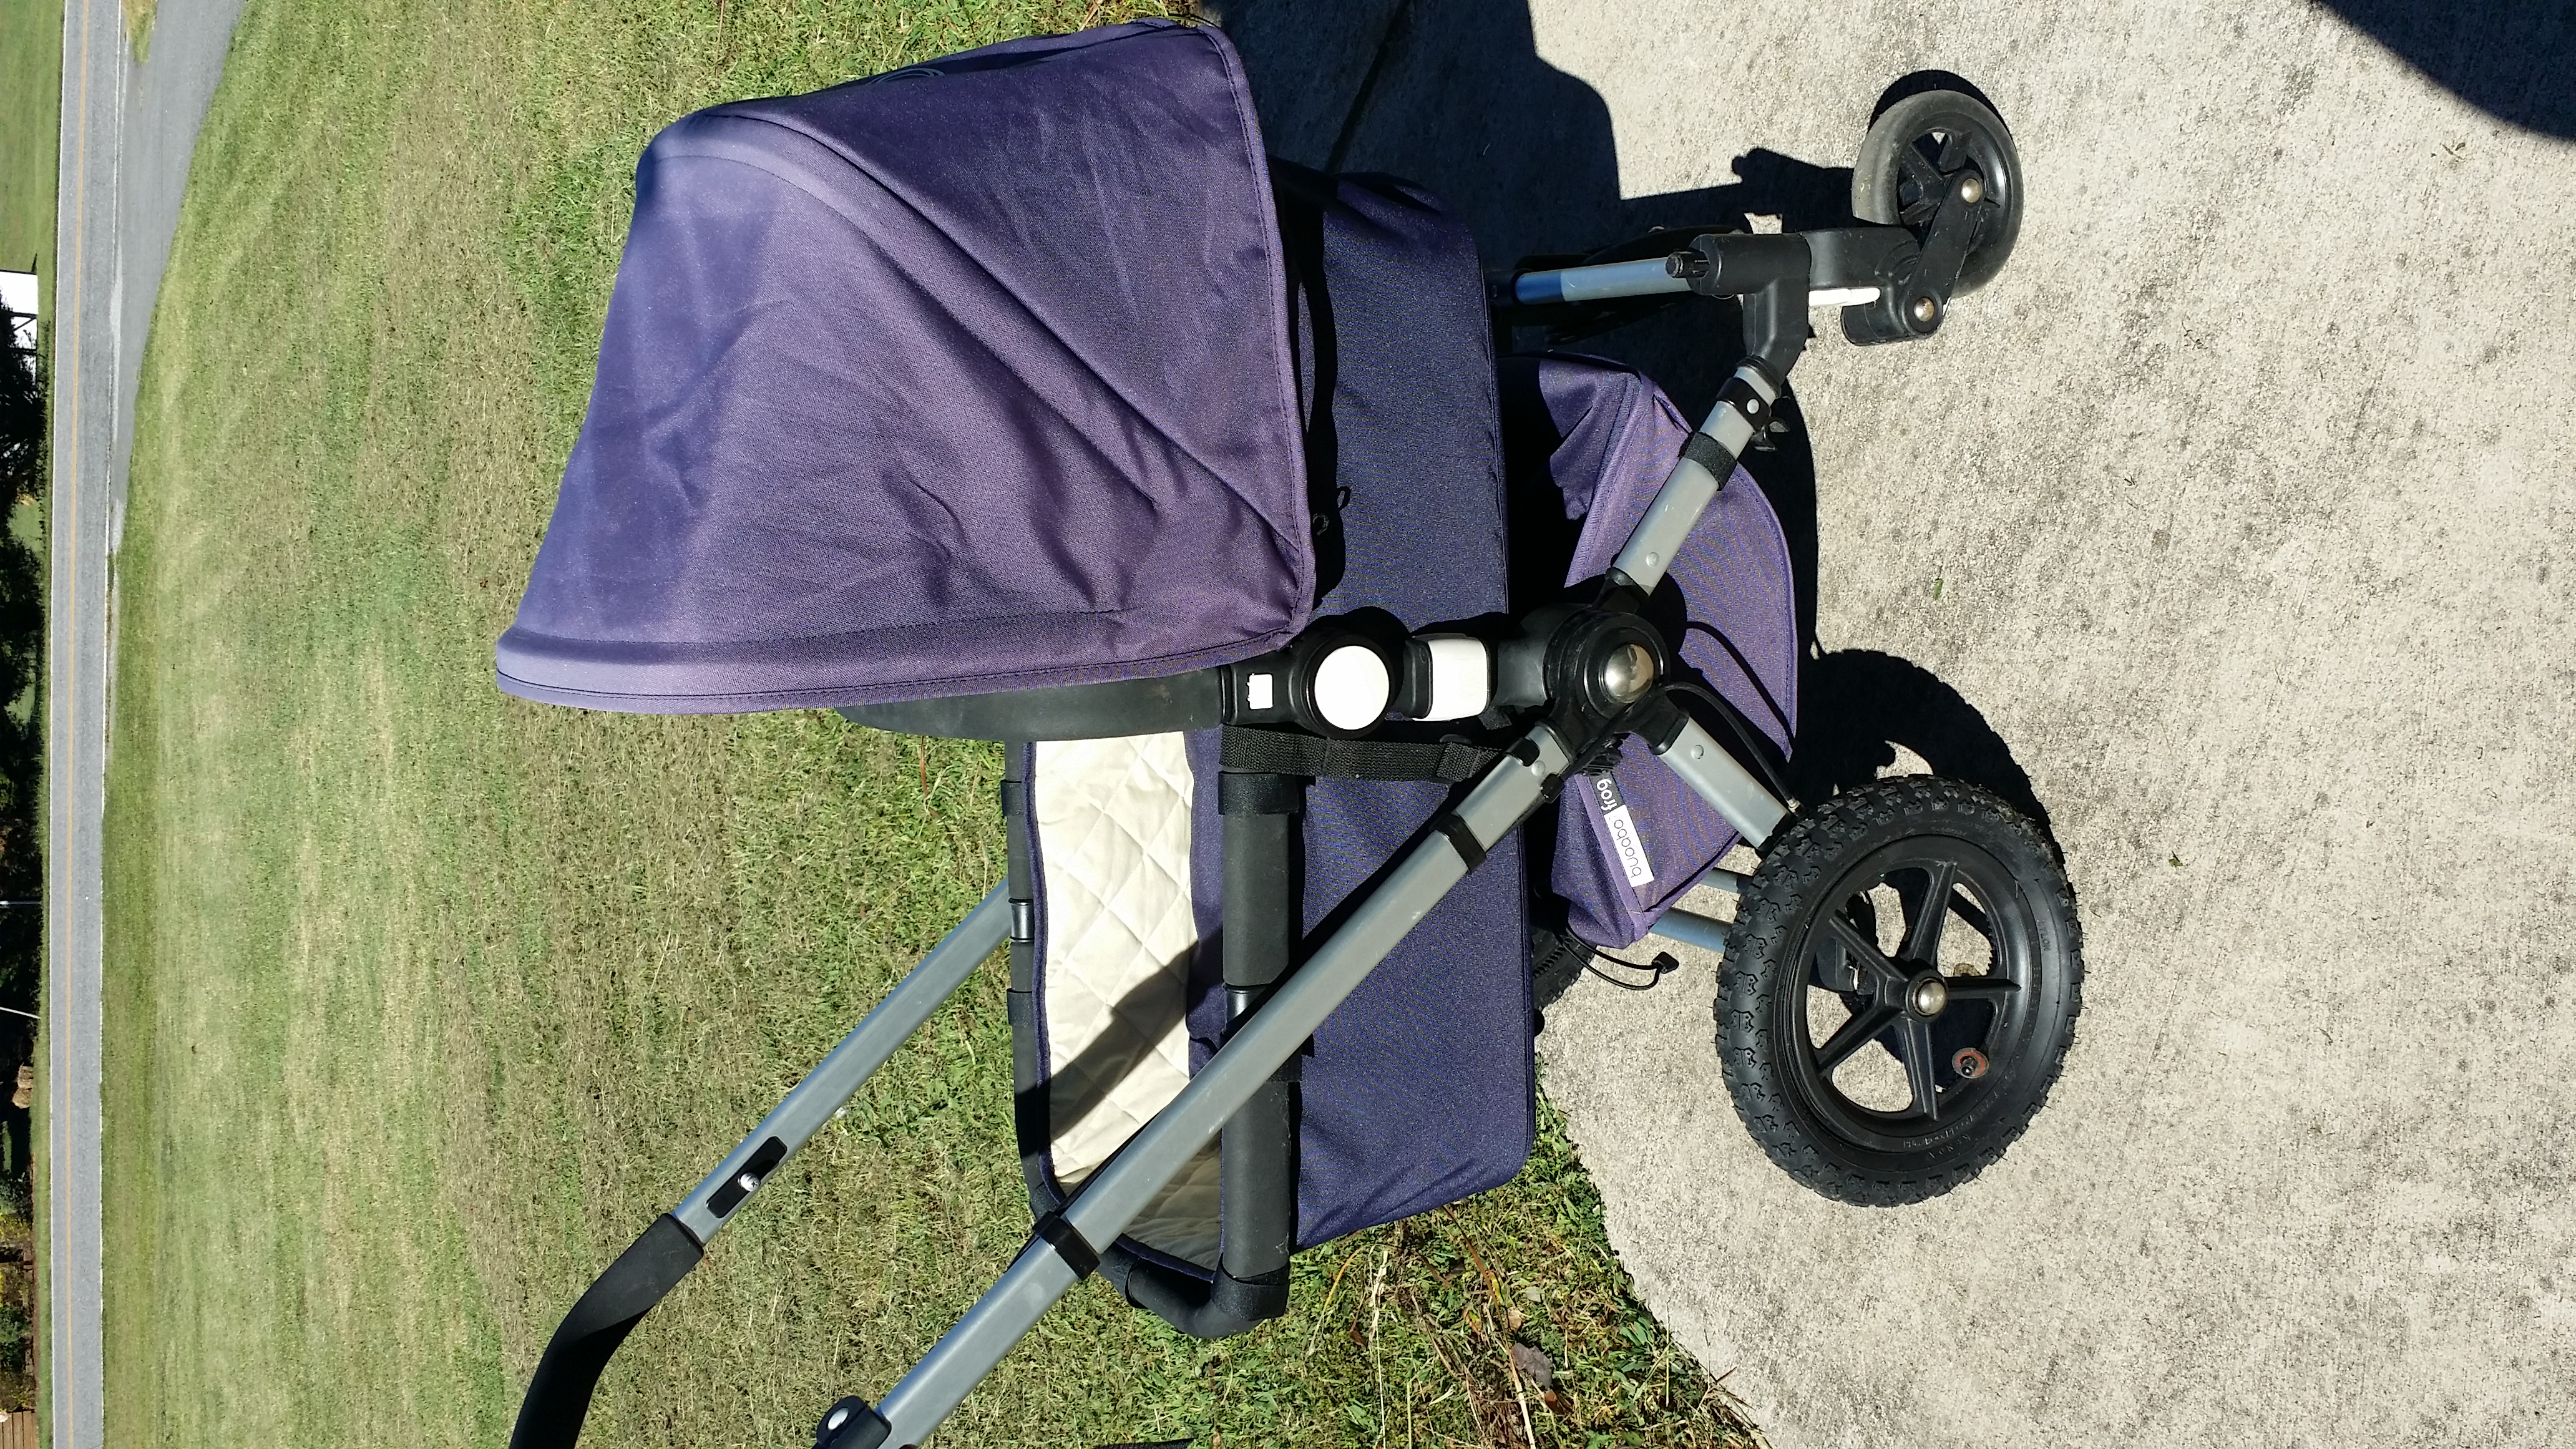 Betere Best Complete Bugaboo Frog Stroller With Accessories! $200 Obo CU-65